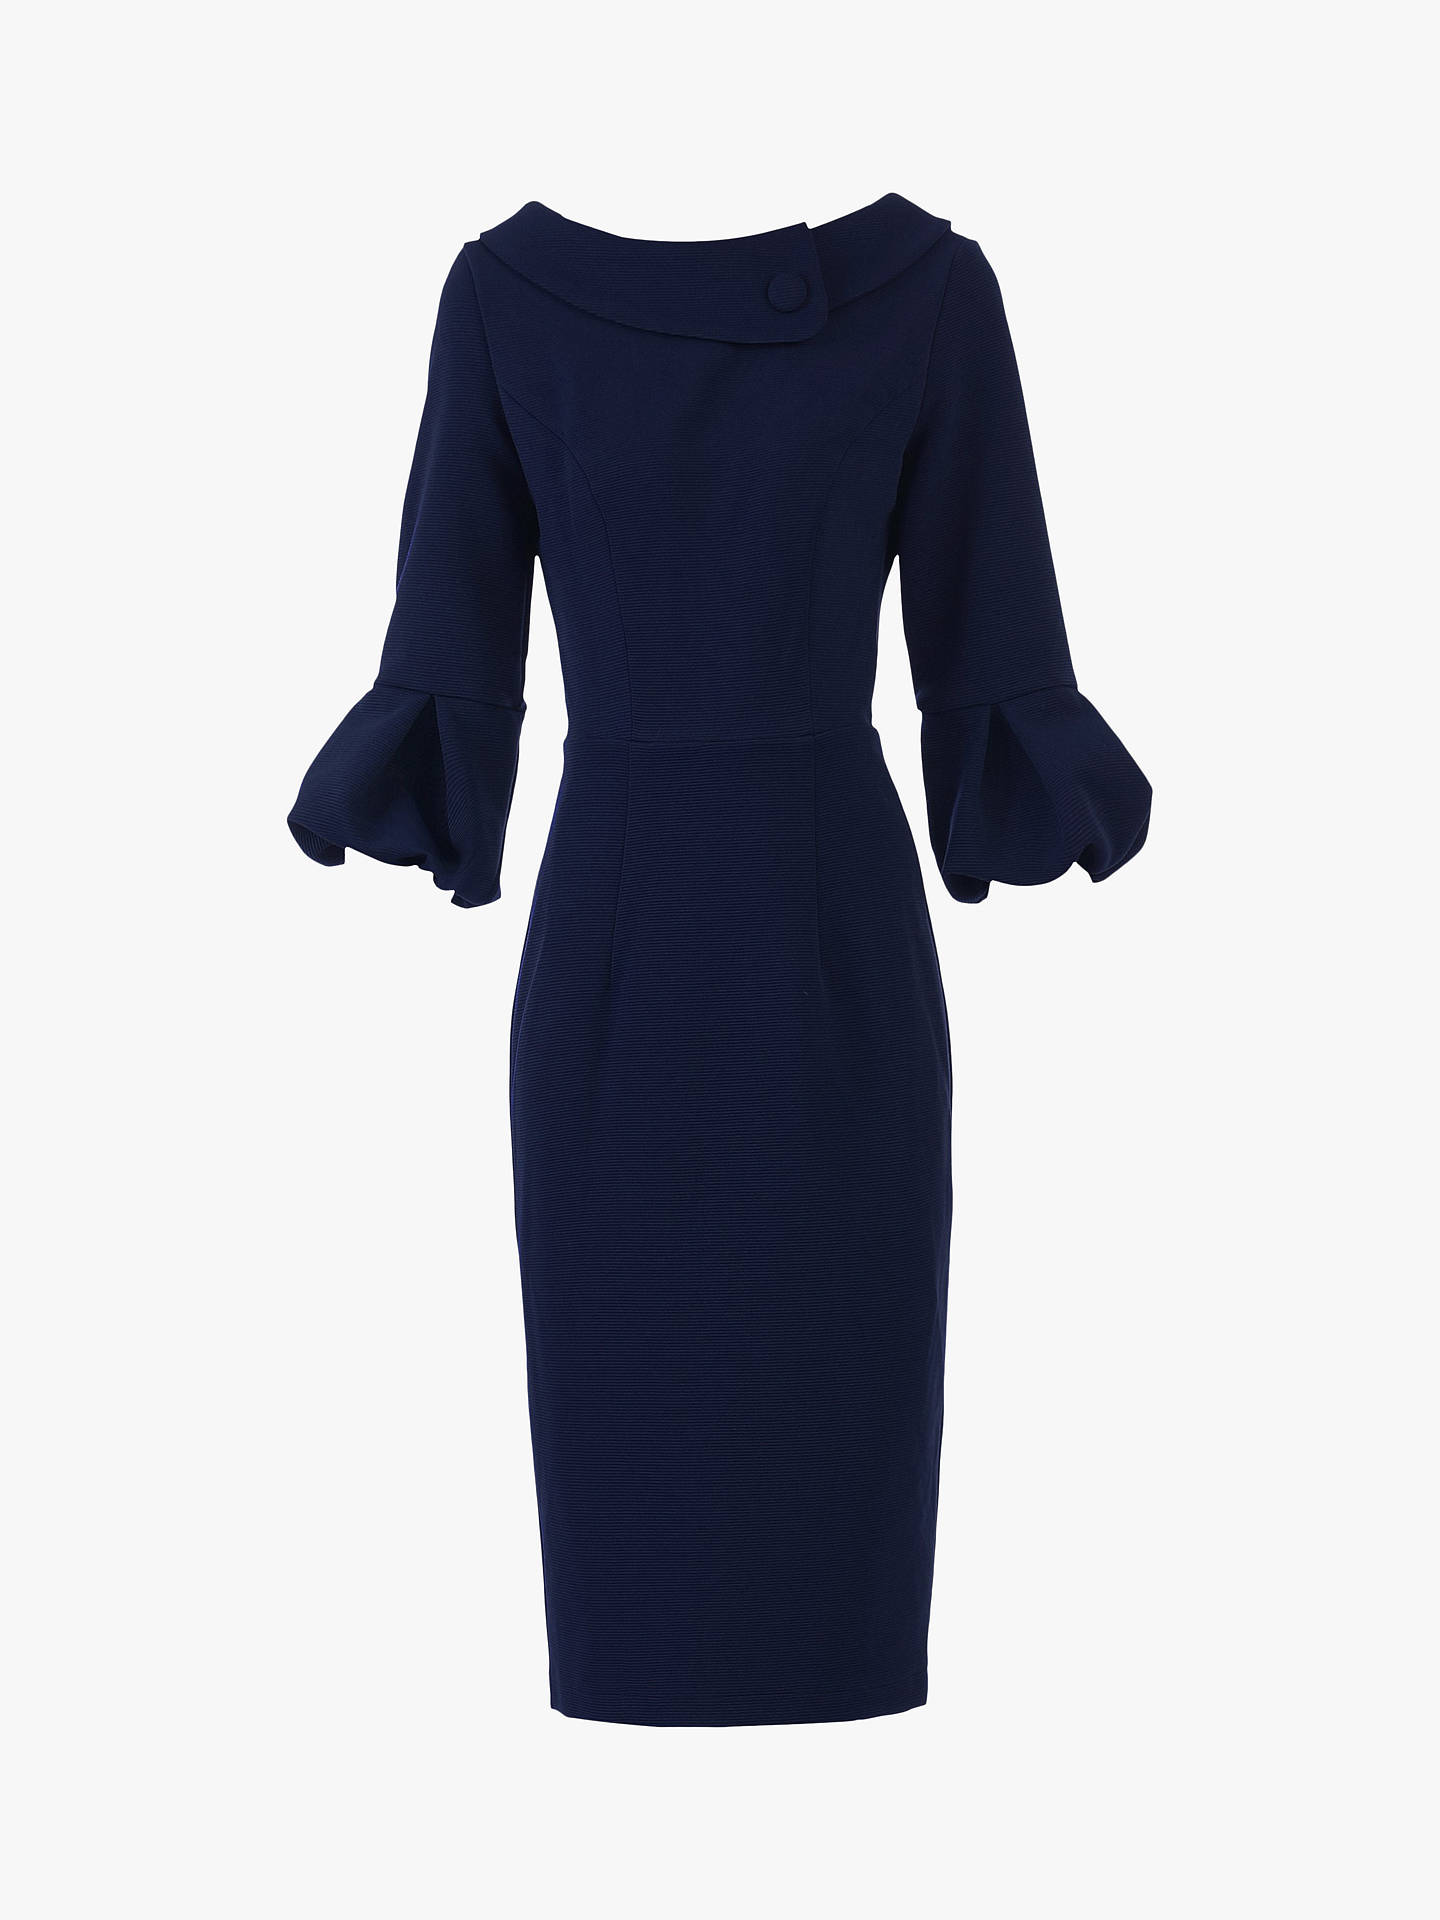 Buy Jolie Moi Bell Sleeve Collar Dress, Navy, 10 Online at johnlewis.com